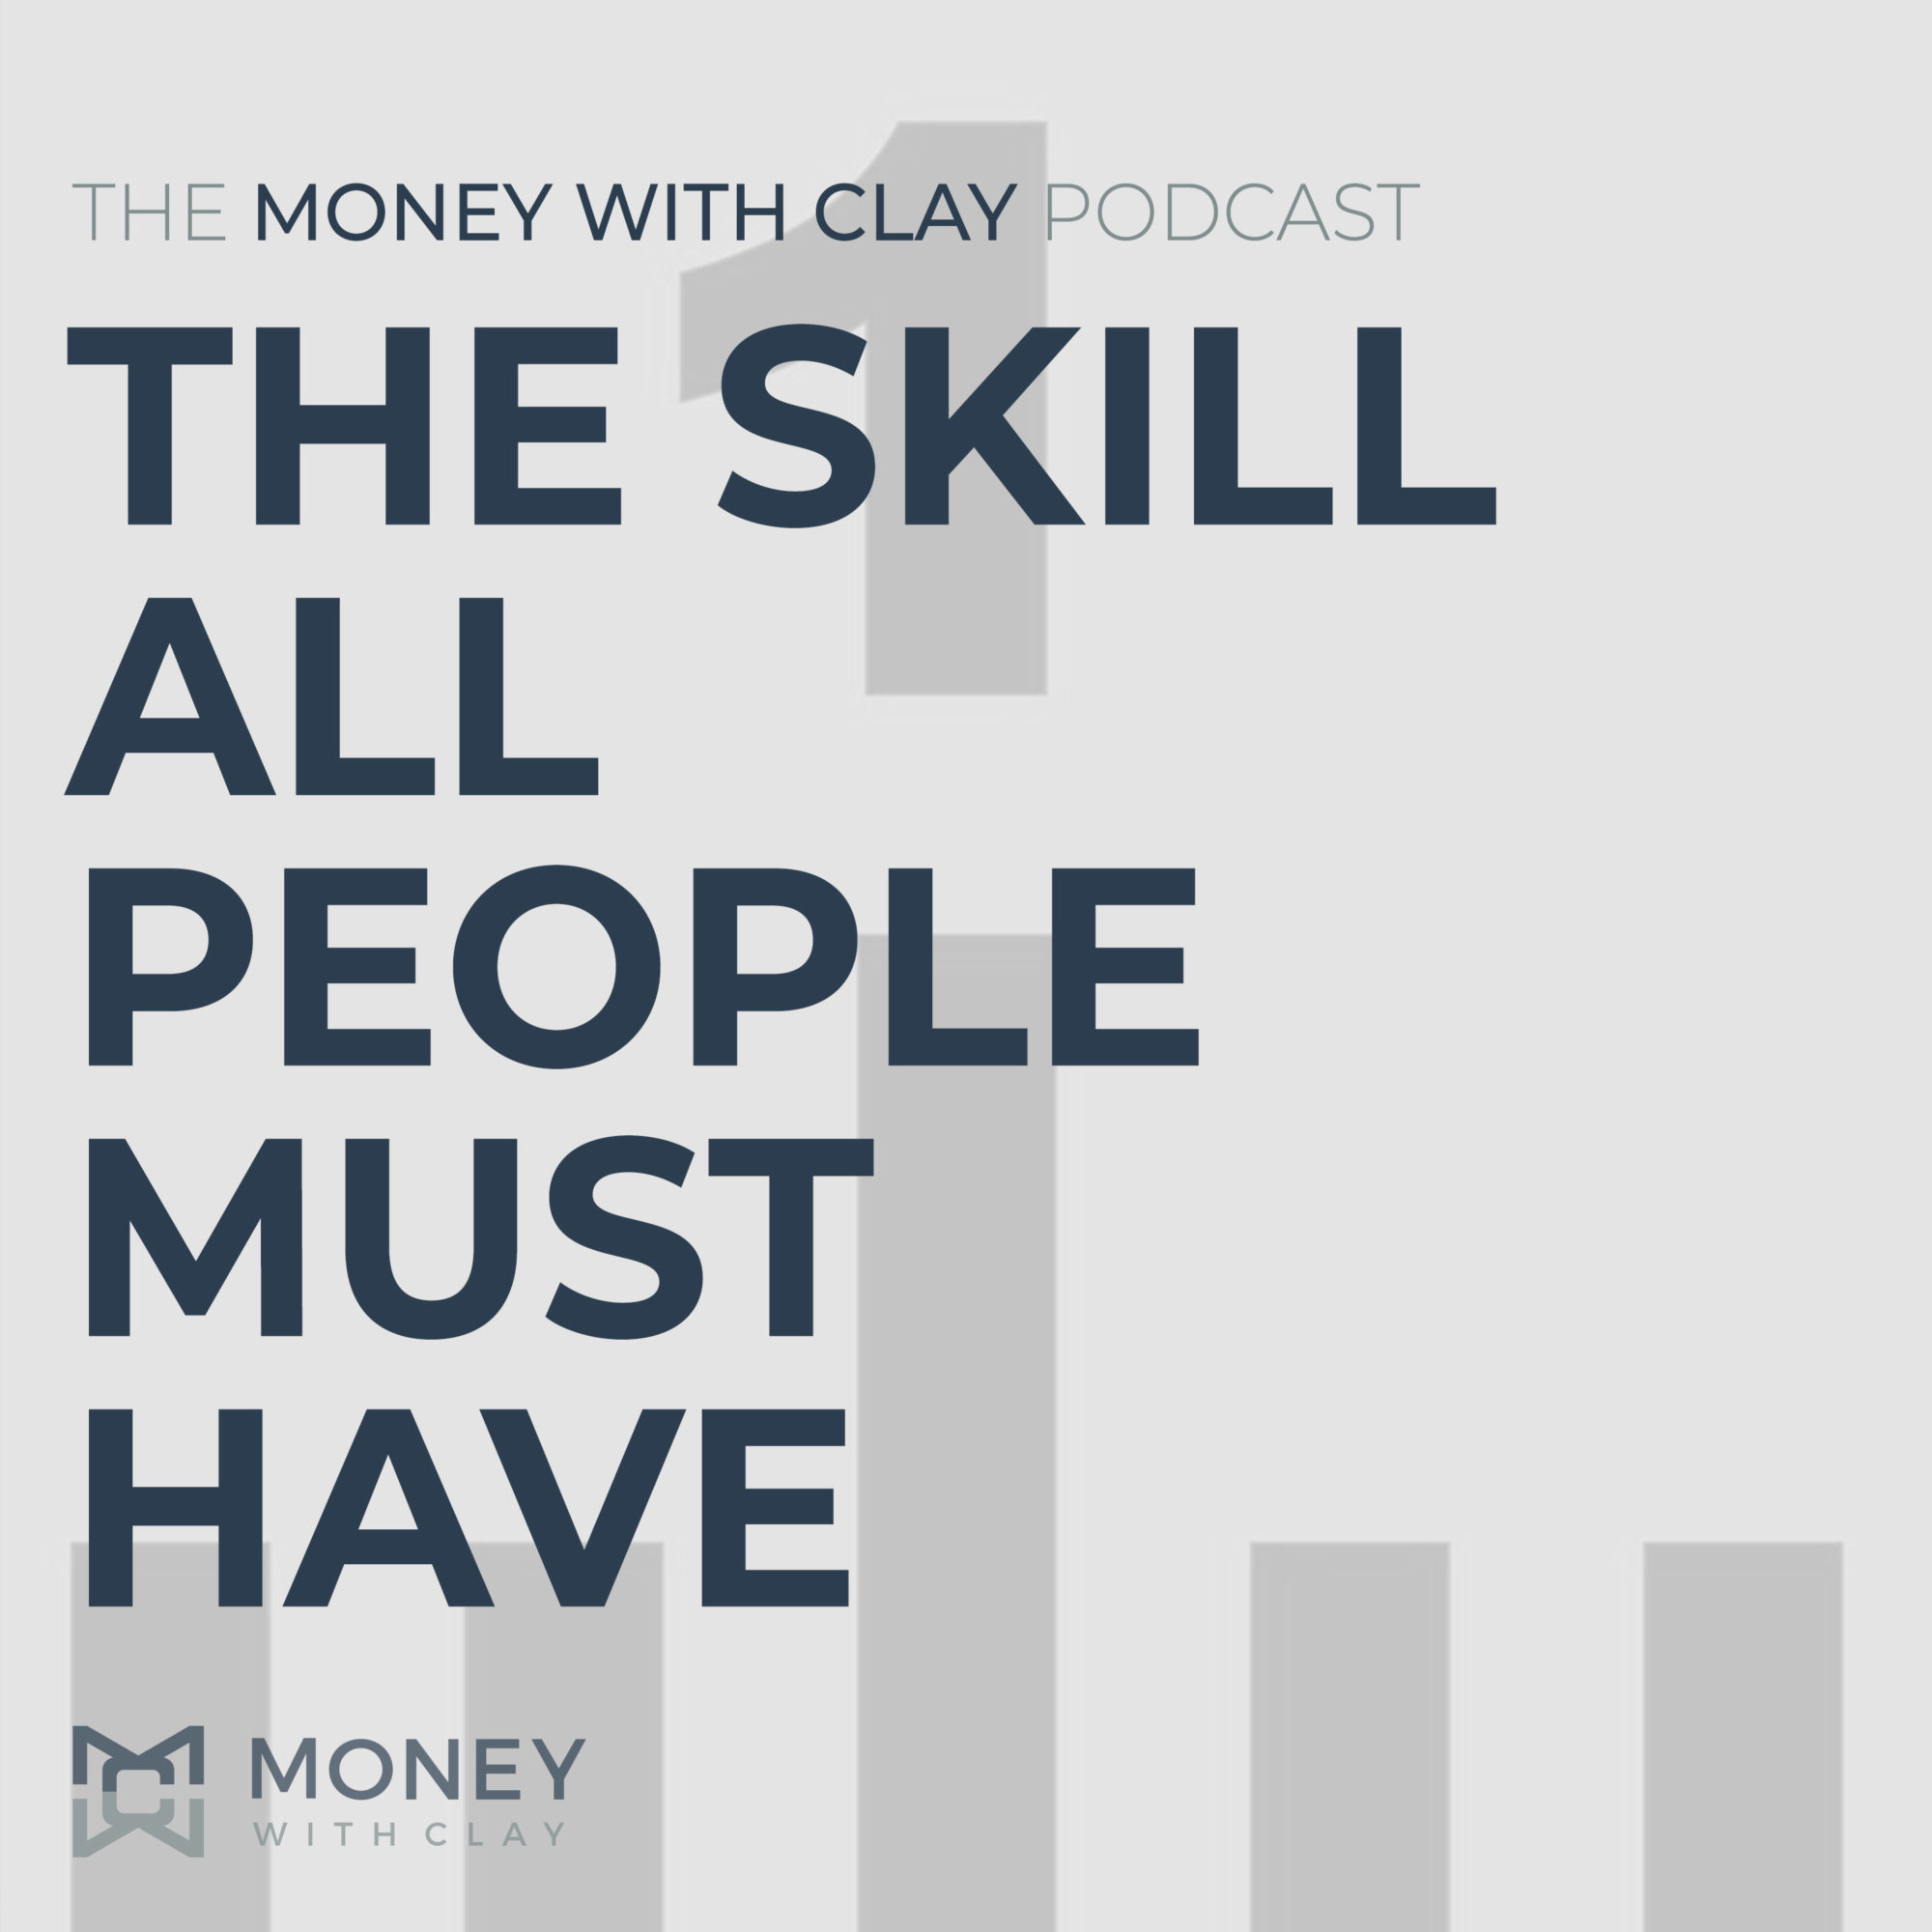 #058 - The Skill ALL People Must Have...